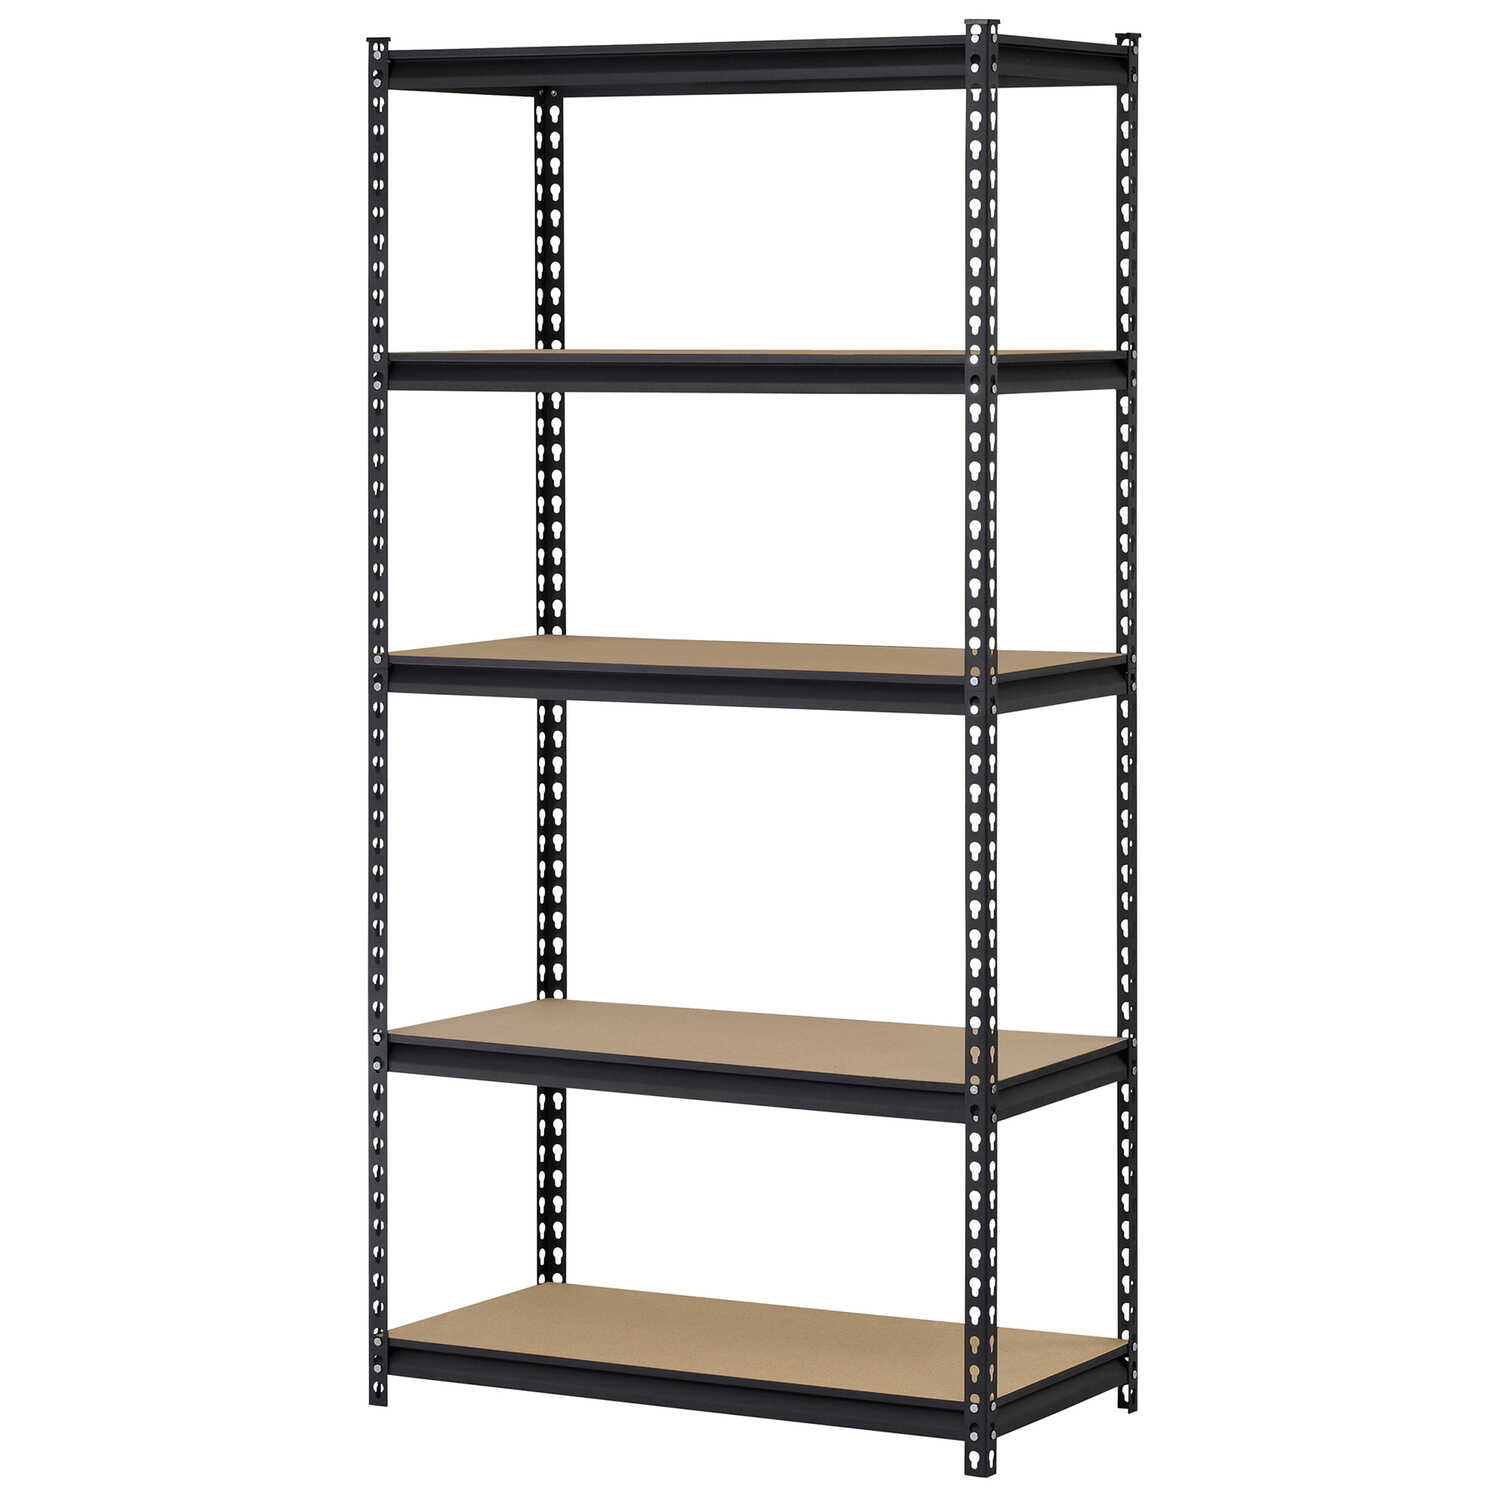 Edsal  Muscle Rack  72 in. H x 36 in. W x 18 in. D Steel  Shelving Unit